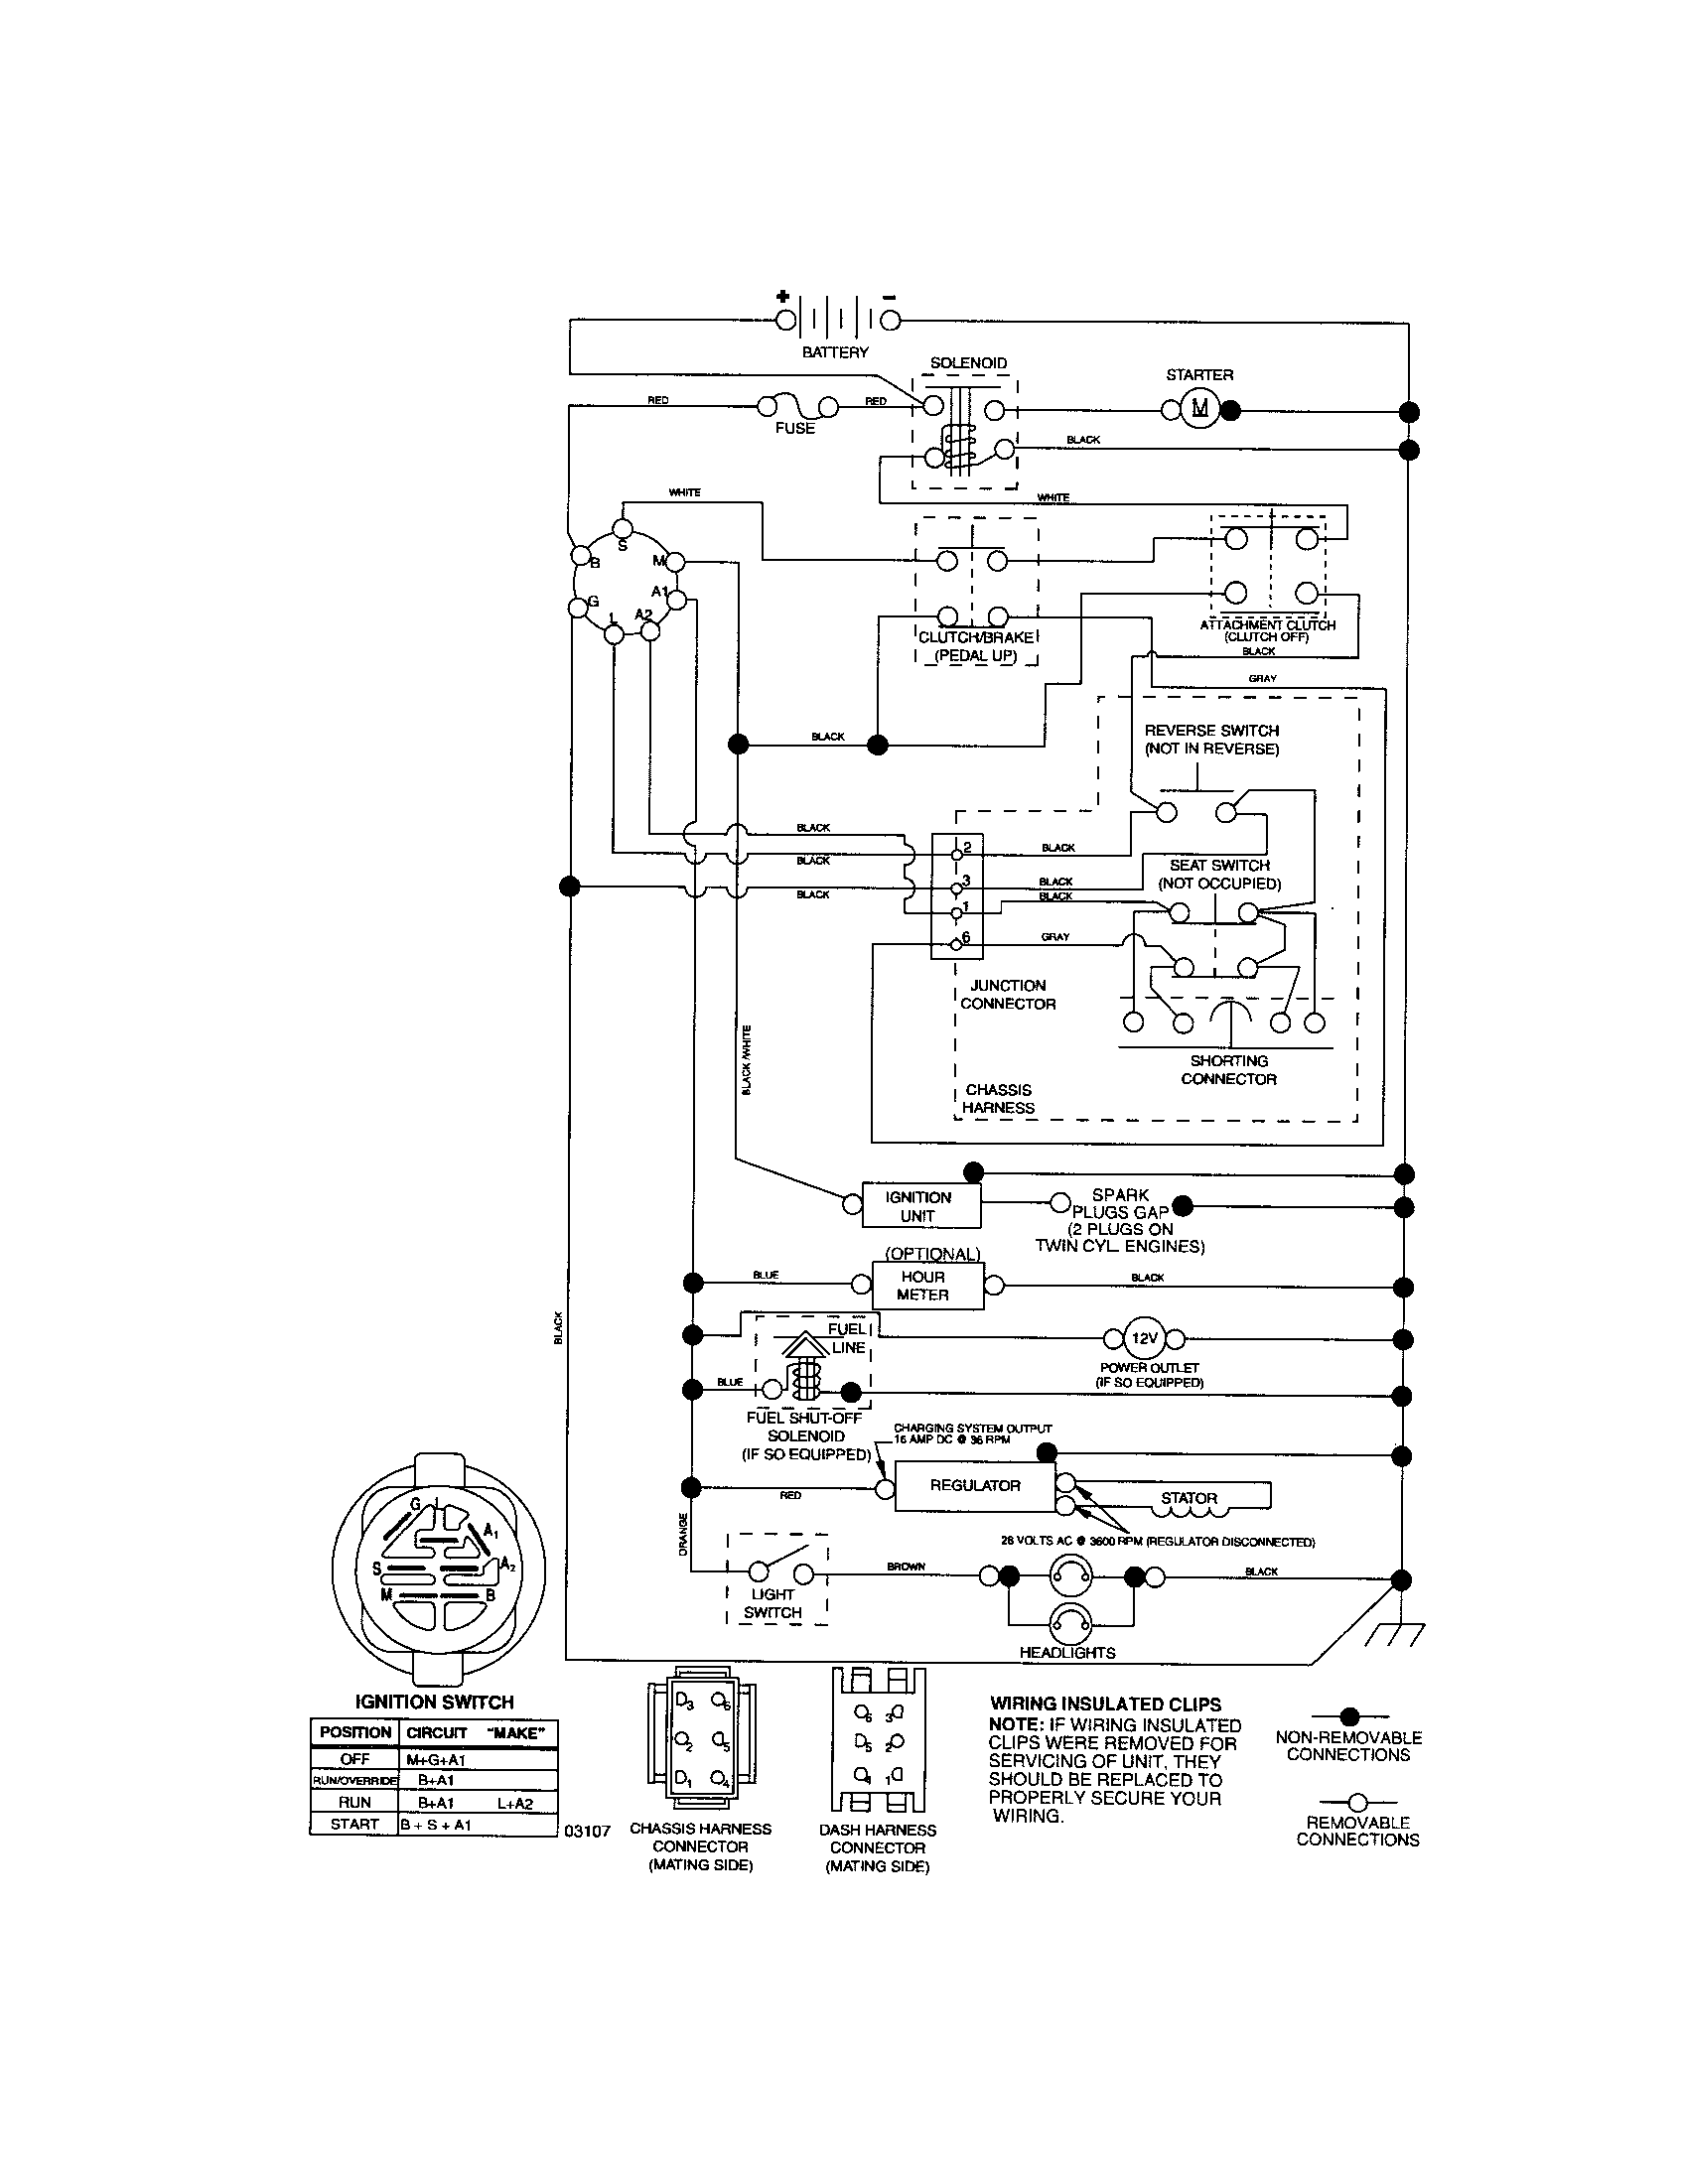 Pro Cut Wiring Diagrams Layout 1 Switch 3 Lights Diagram Craftsman Riding Mower Electrical Rh Pinterest Com Way